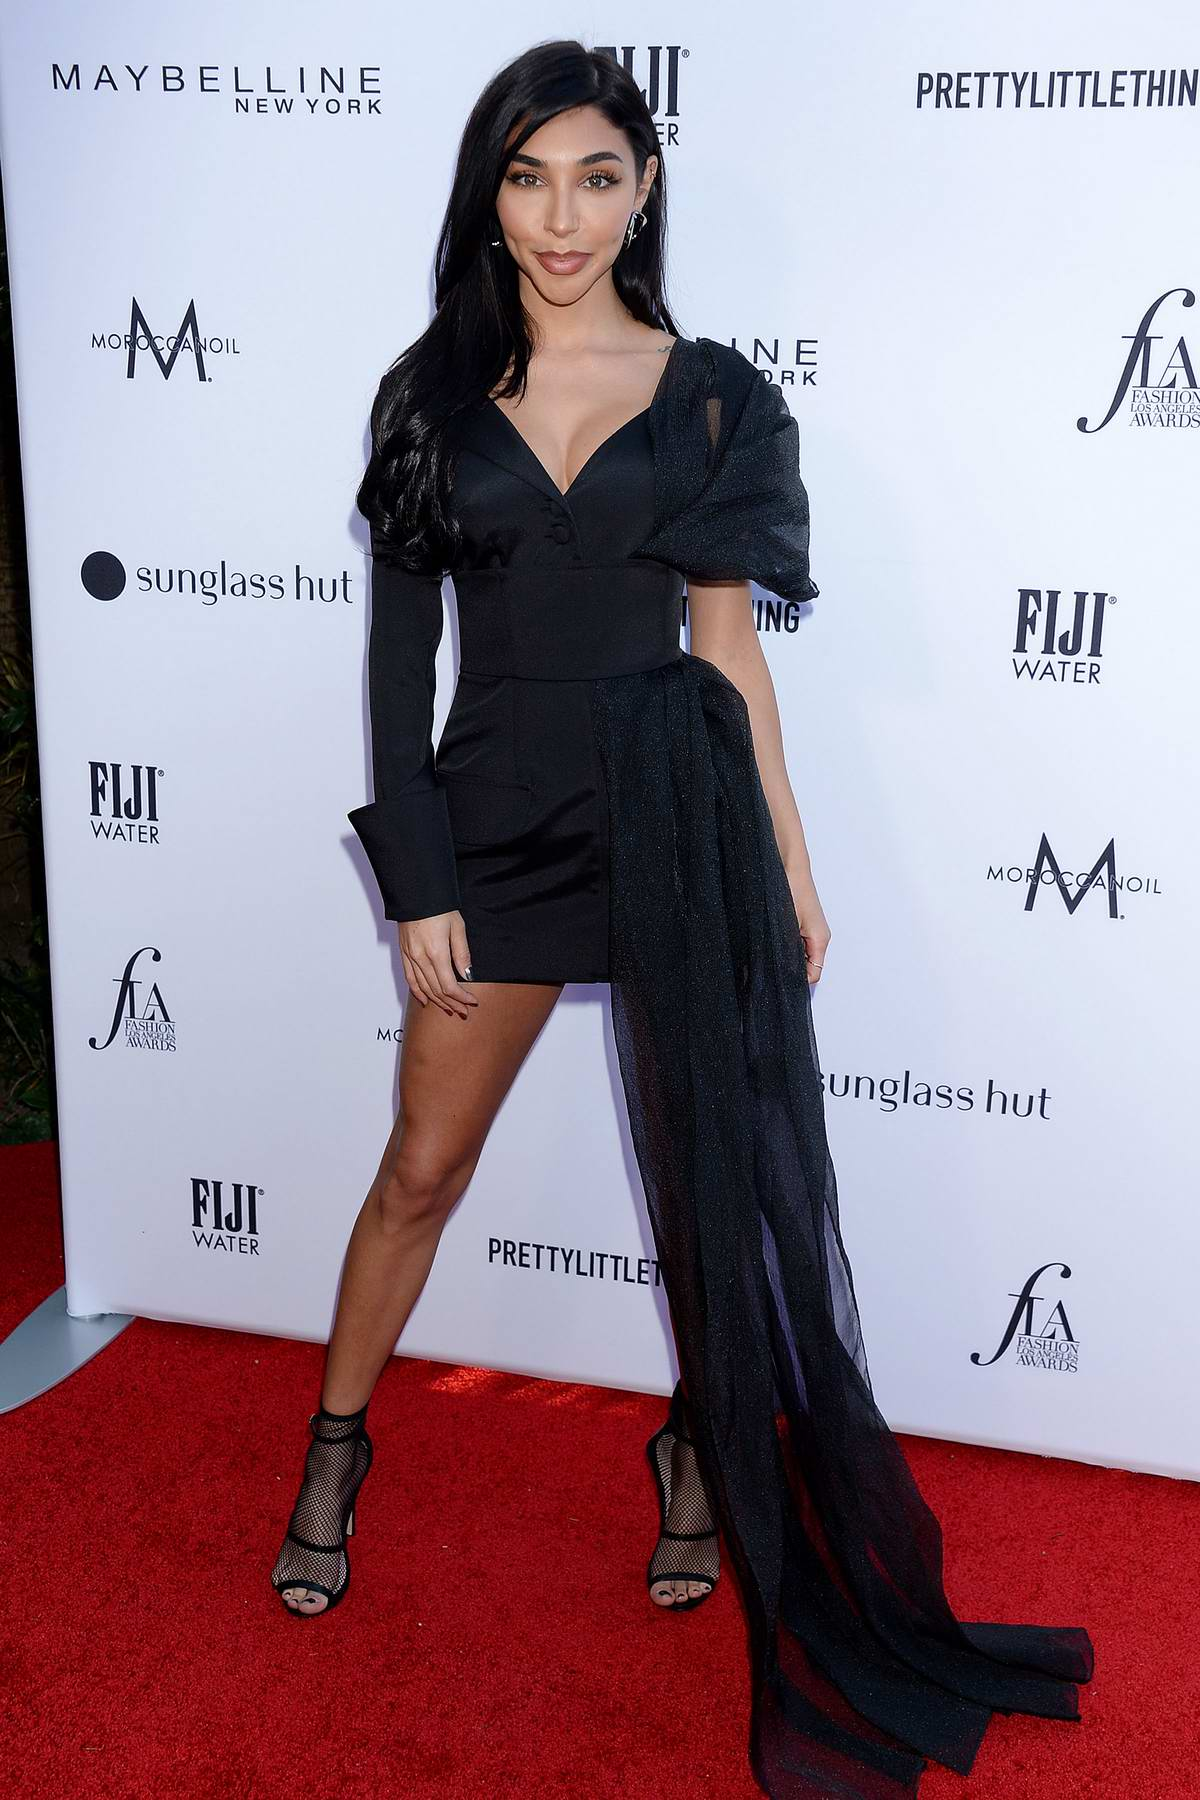 Chantel Jeffries attends The Daily Front Row's 5th Annual Fashion Awards 2019 at The Beverly Hills Hotel in Los Angeles